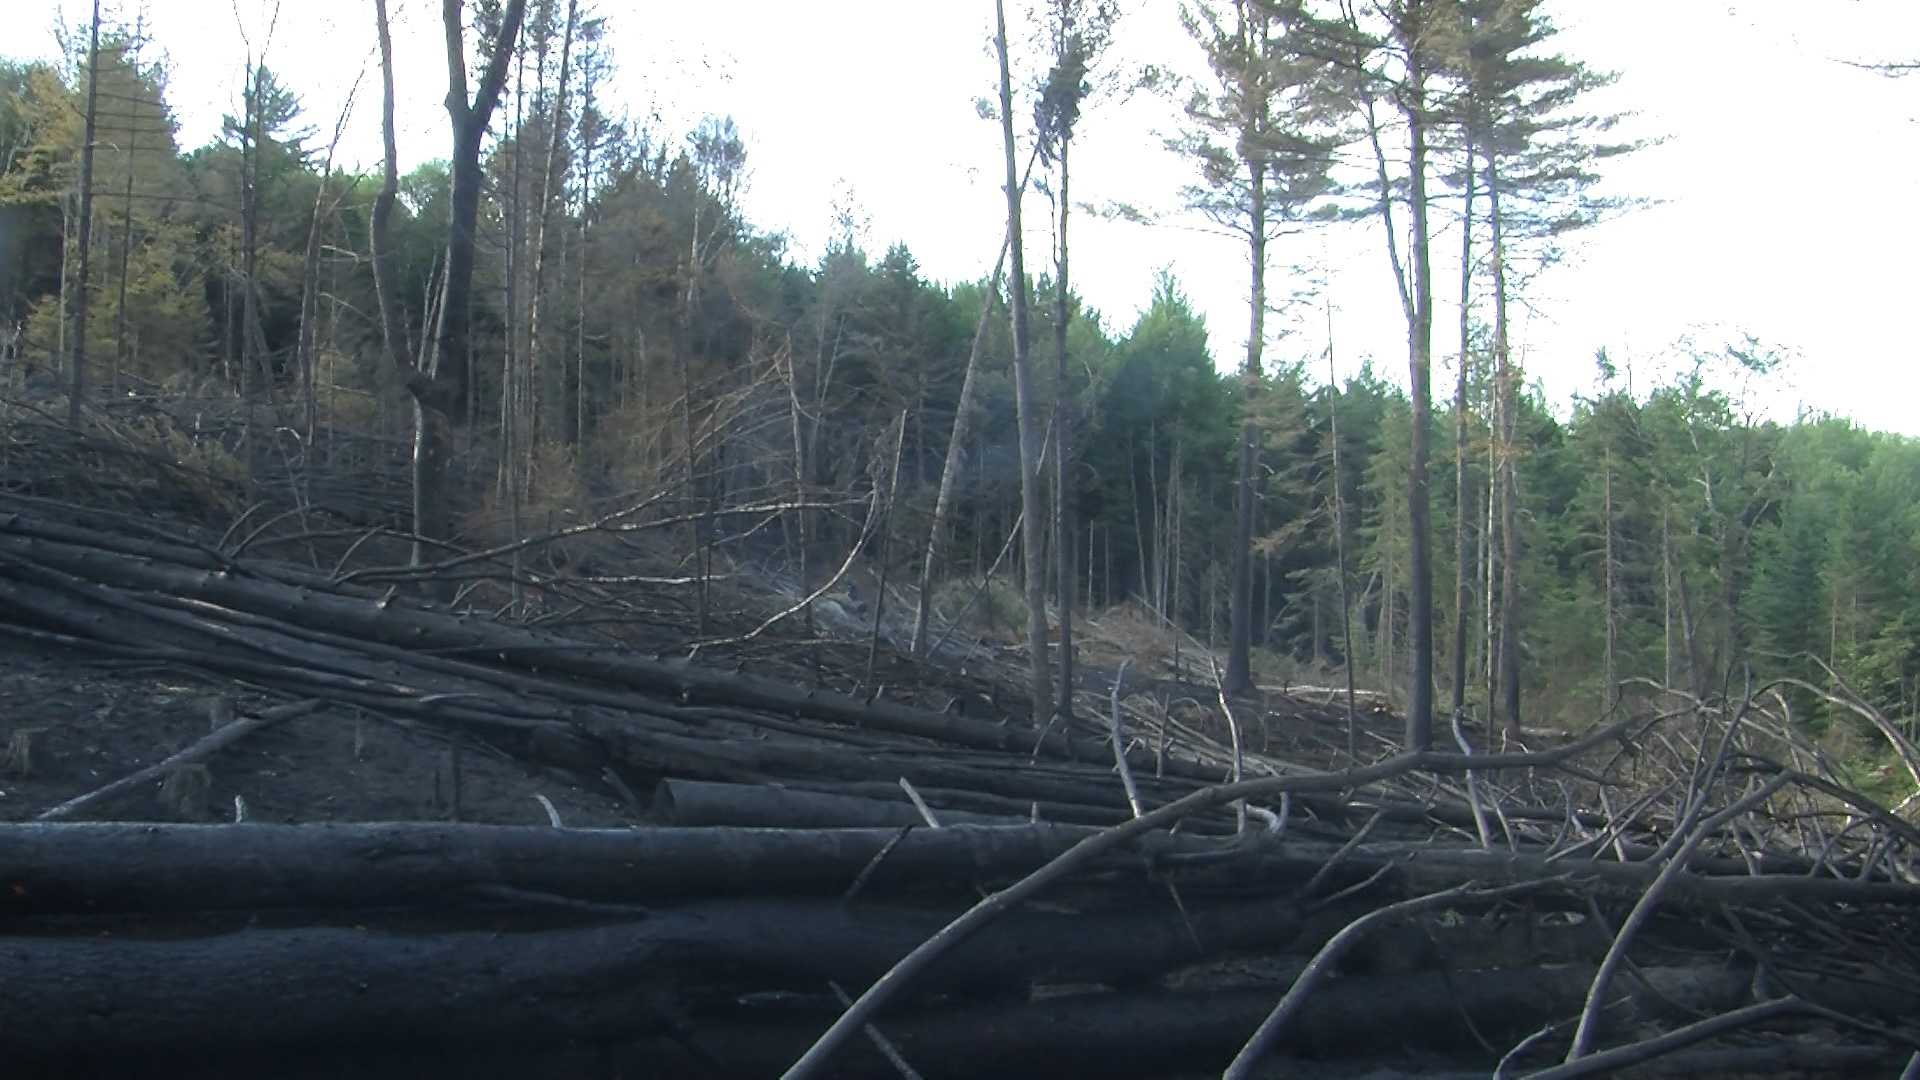 About 170 firefighters from 26 companies battled a forest fire near Groton State Forest on Tuesday afternoon.